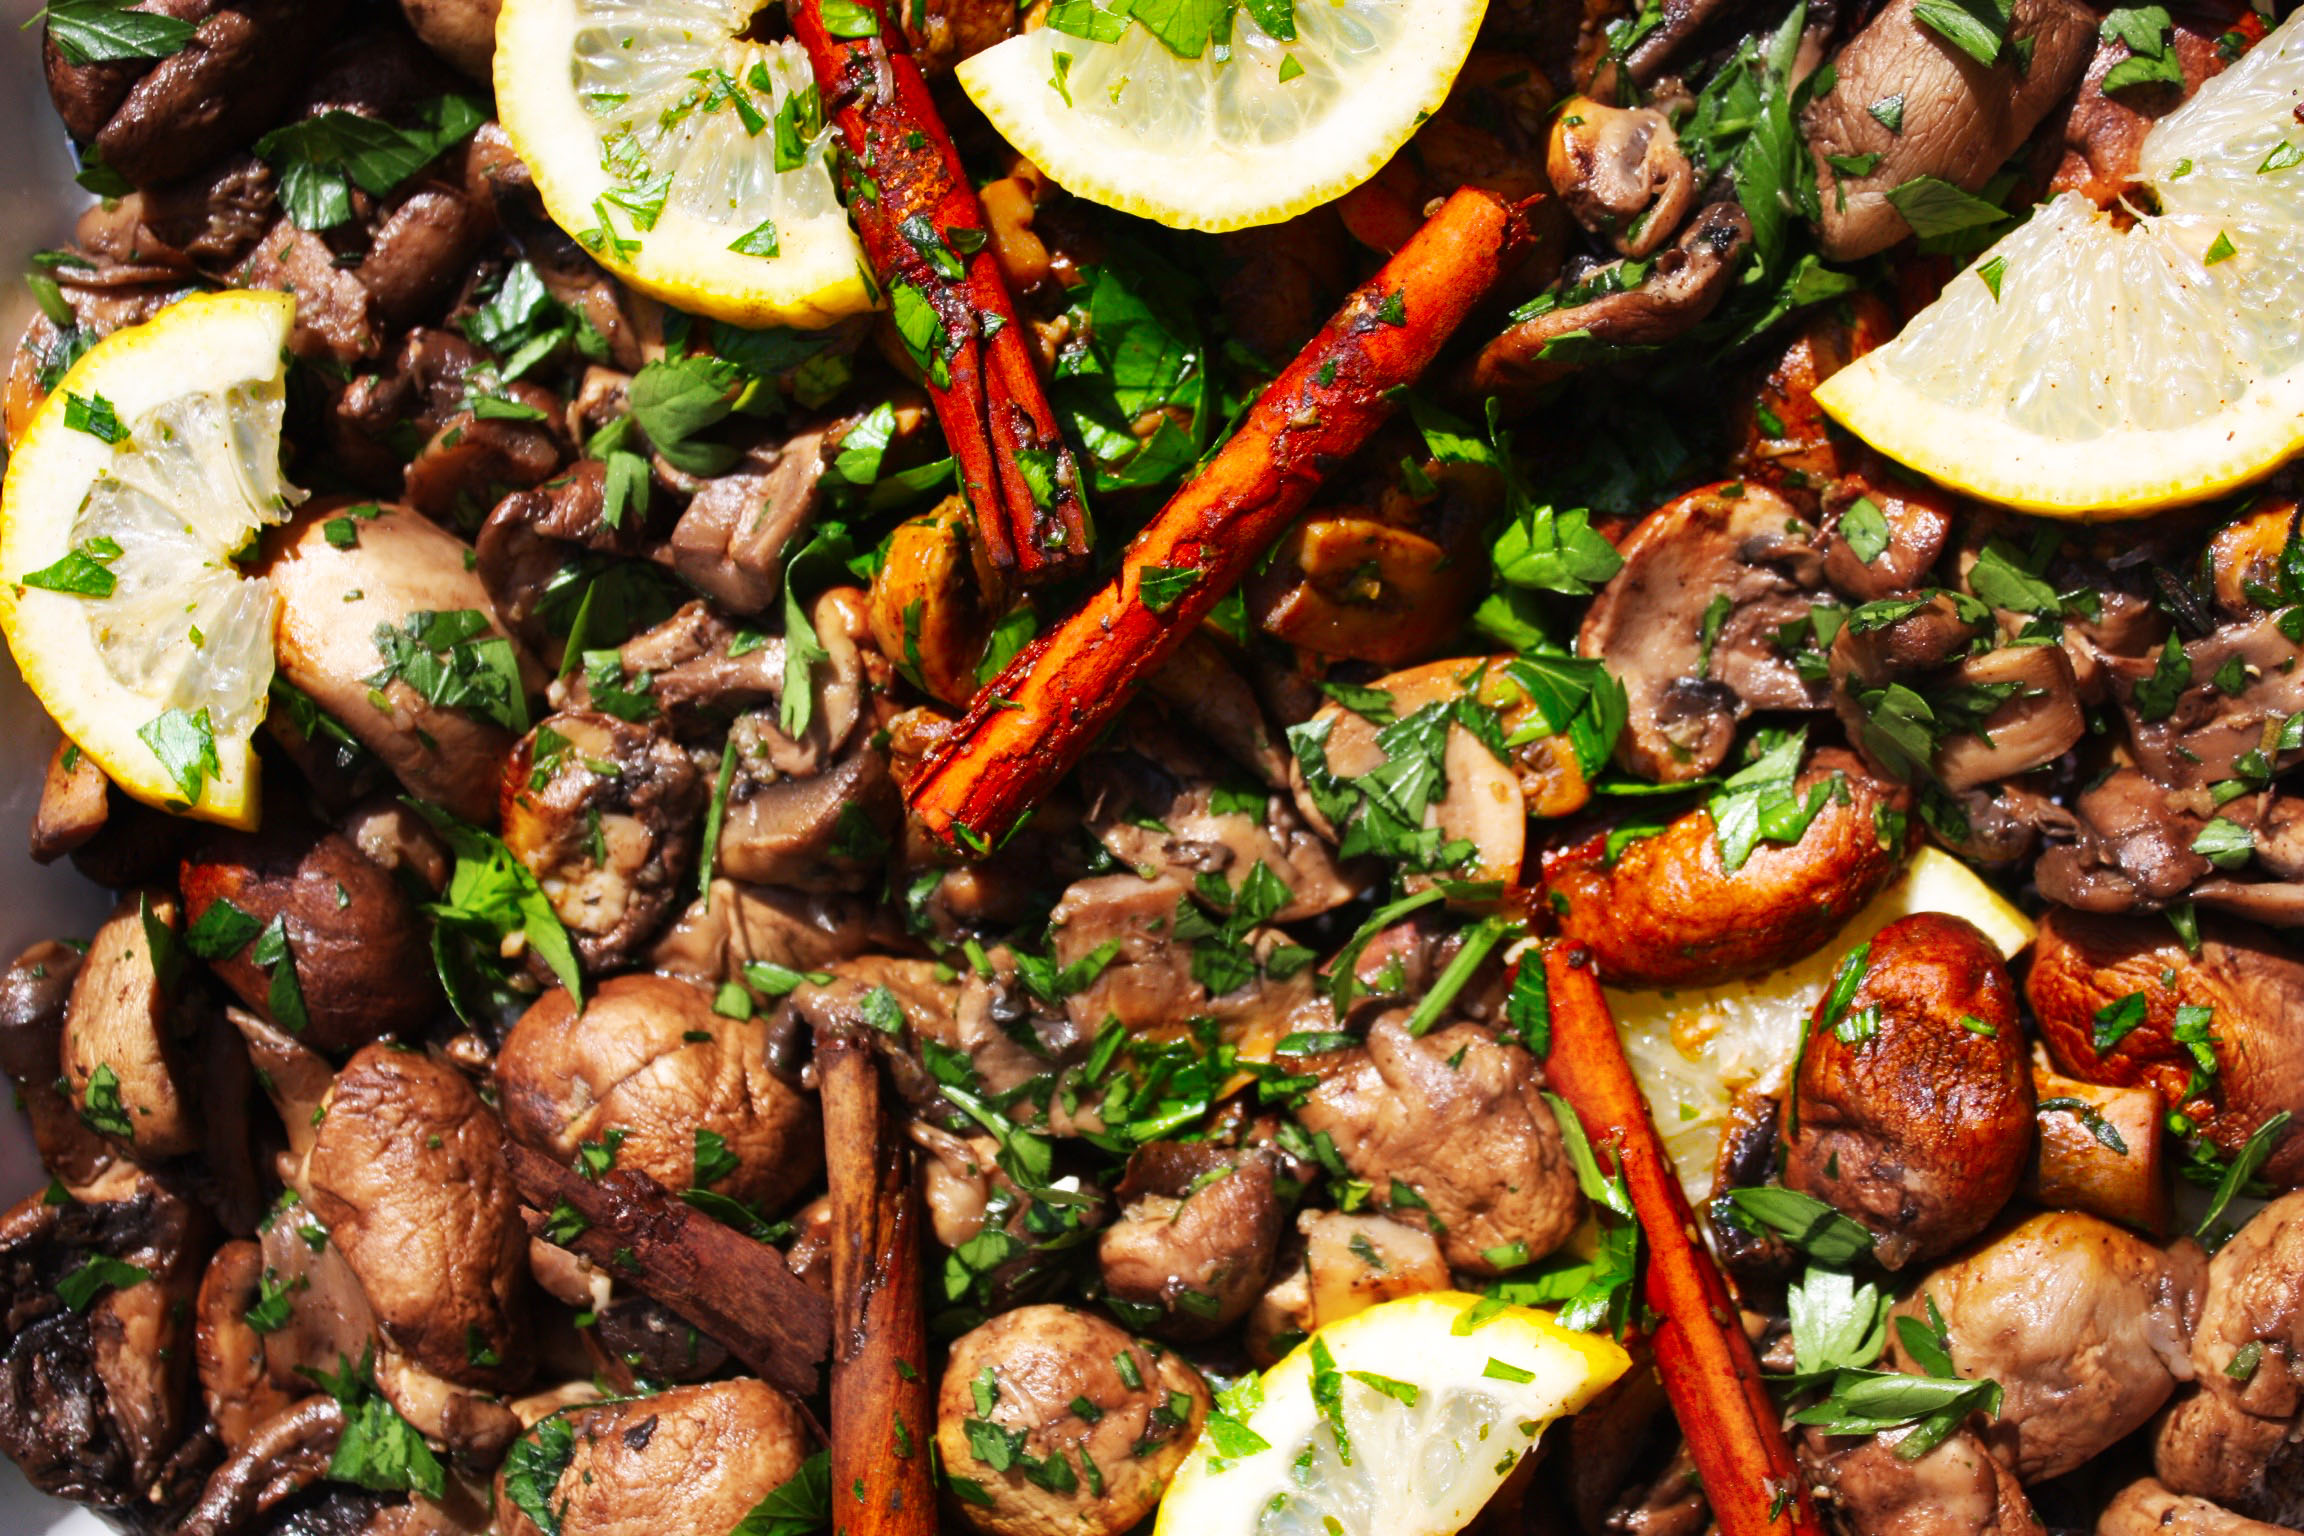 All the best fresh ingredients. Here: Cinnamon and citrus mushrooms